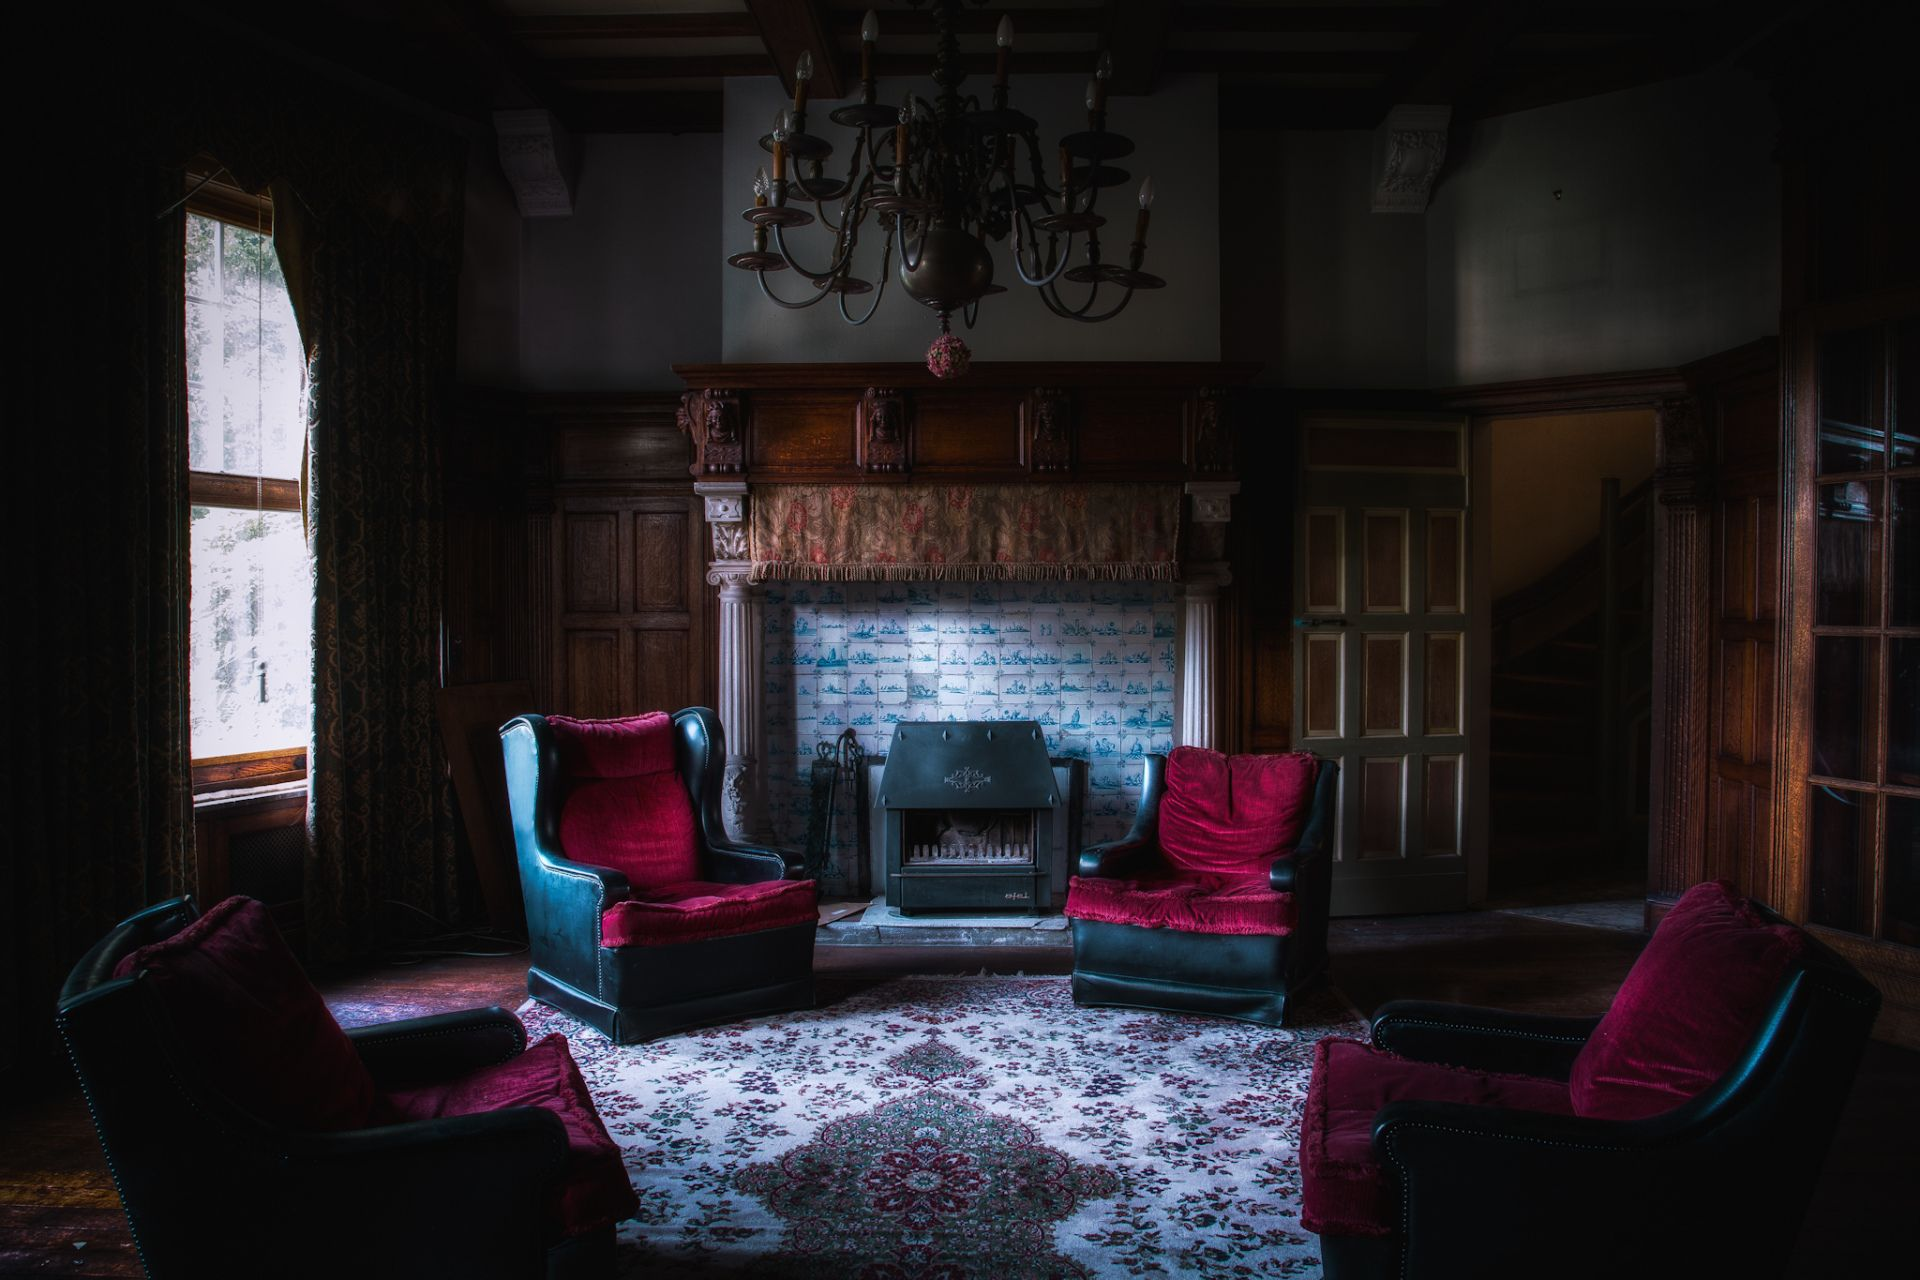 Man Made Room House Chair Fireplace Curtain Chandelier Gothic Dark Wallpaper Gothic Living Rooms Contemporary Living Room Sets Corner Fireplace Living Room